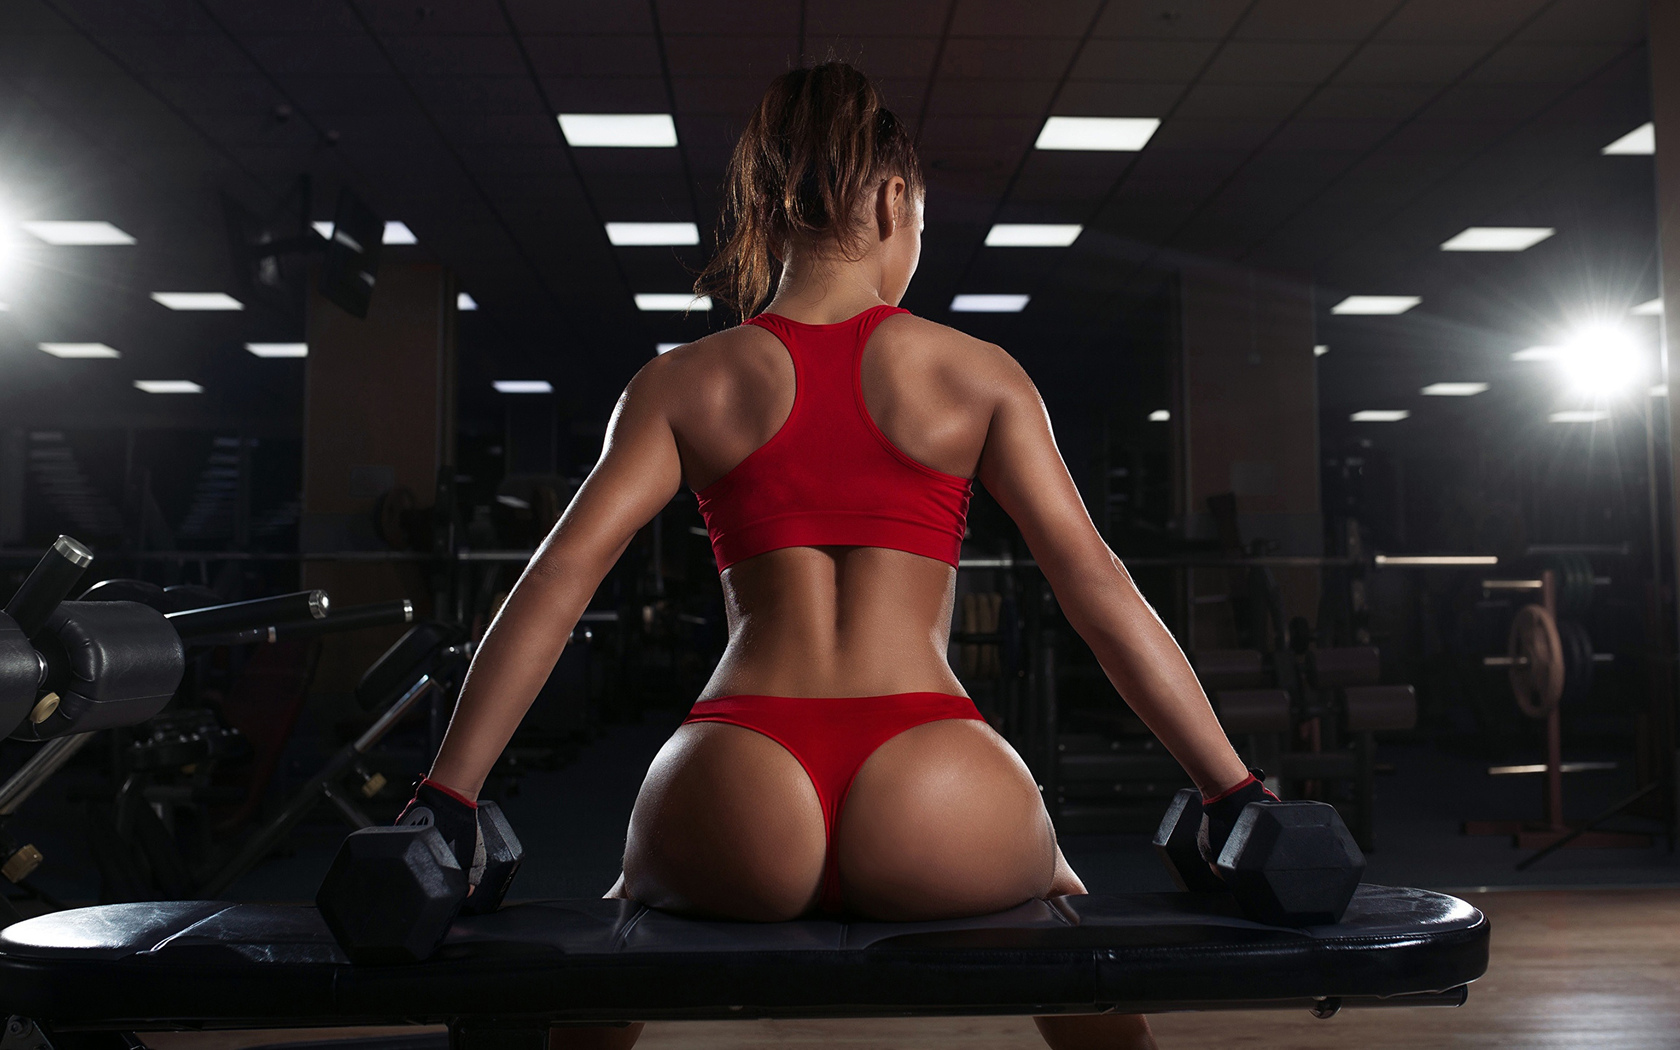 Super hot girls in the gym naked — photo 12